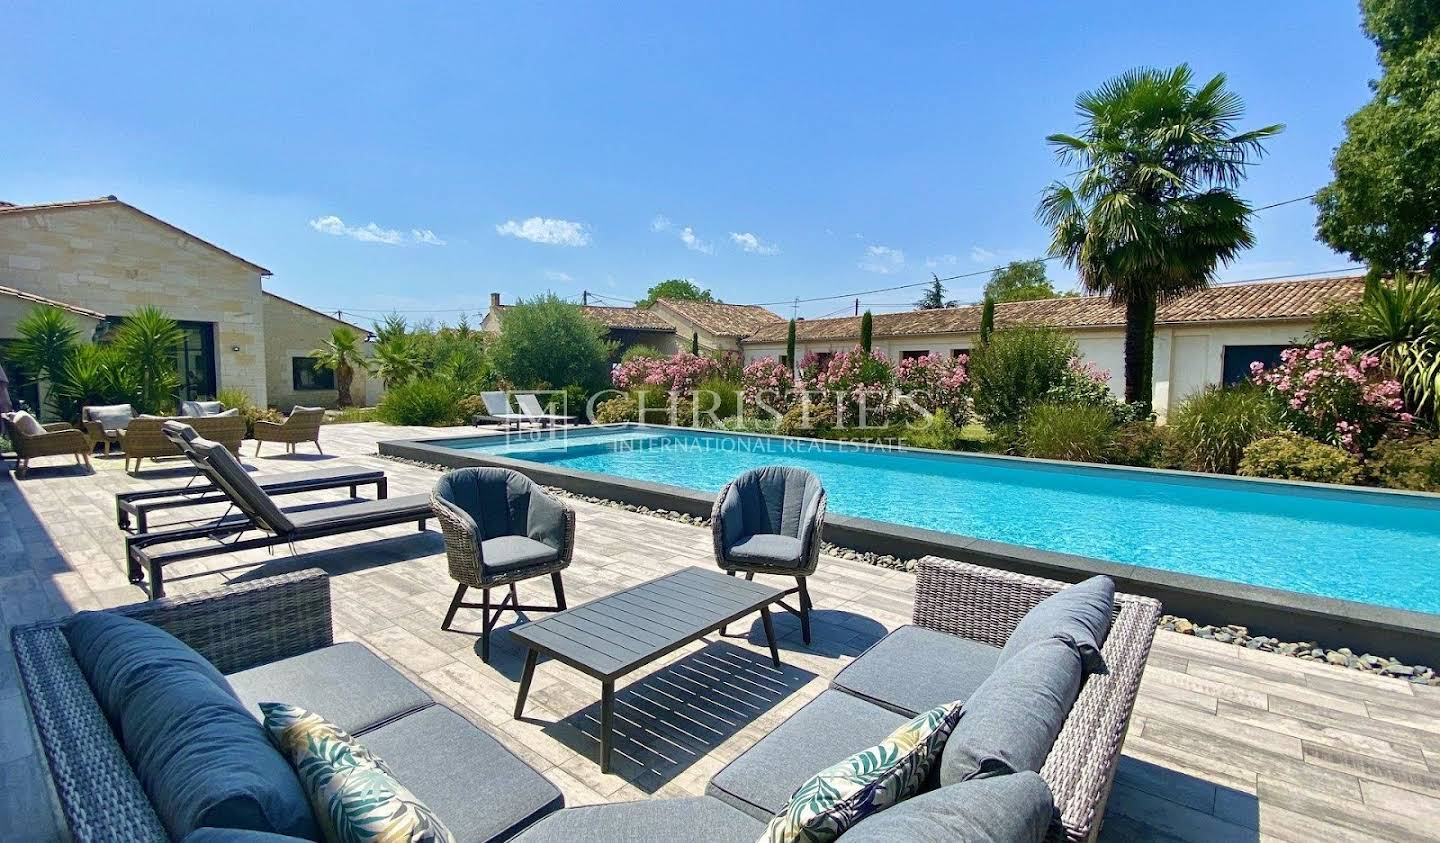 Property with pool Libourne